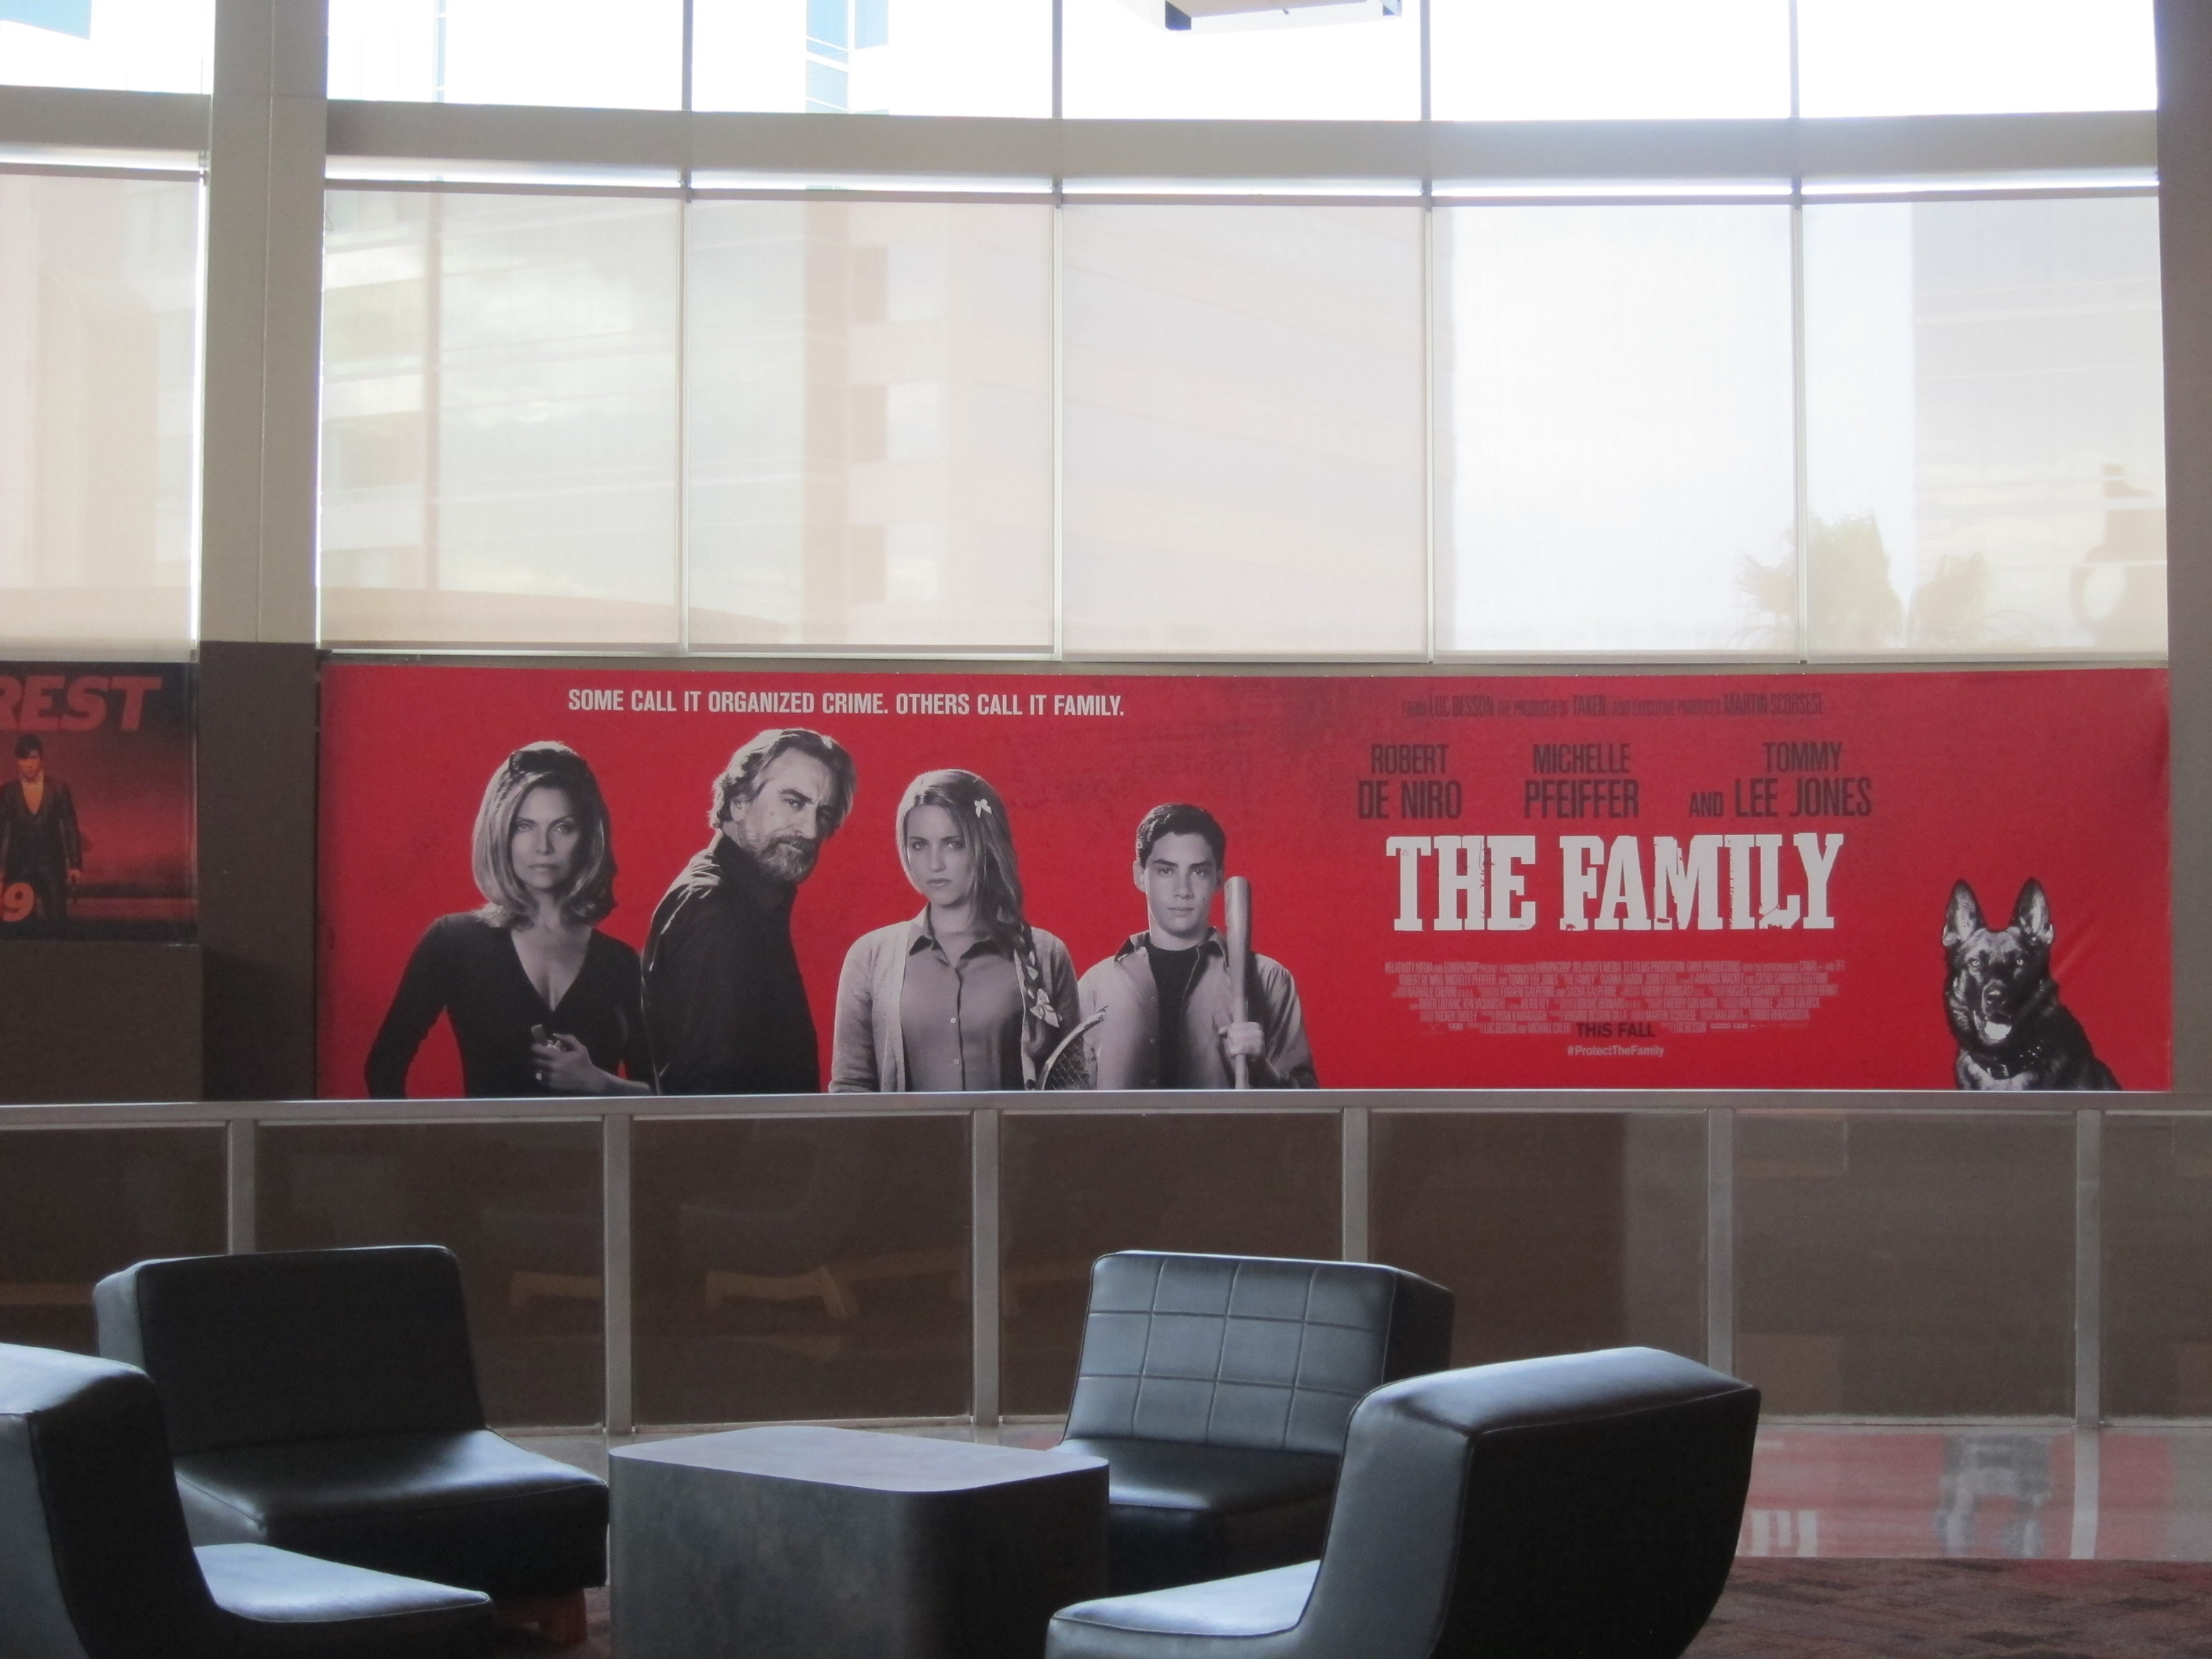 THE FAMILY at the Rave Theatre in Southern California.